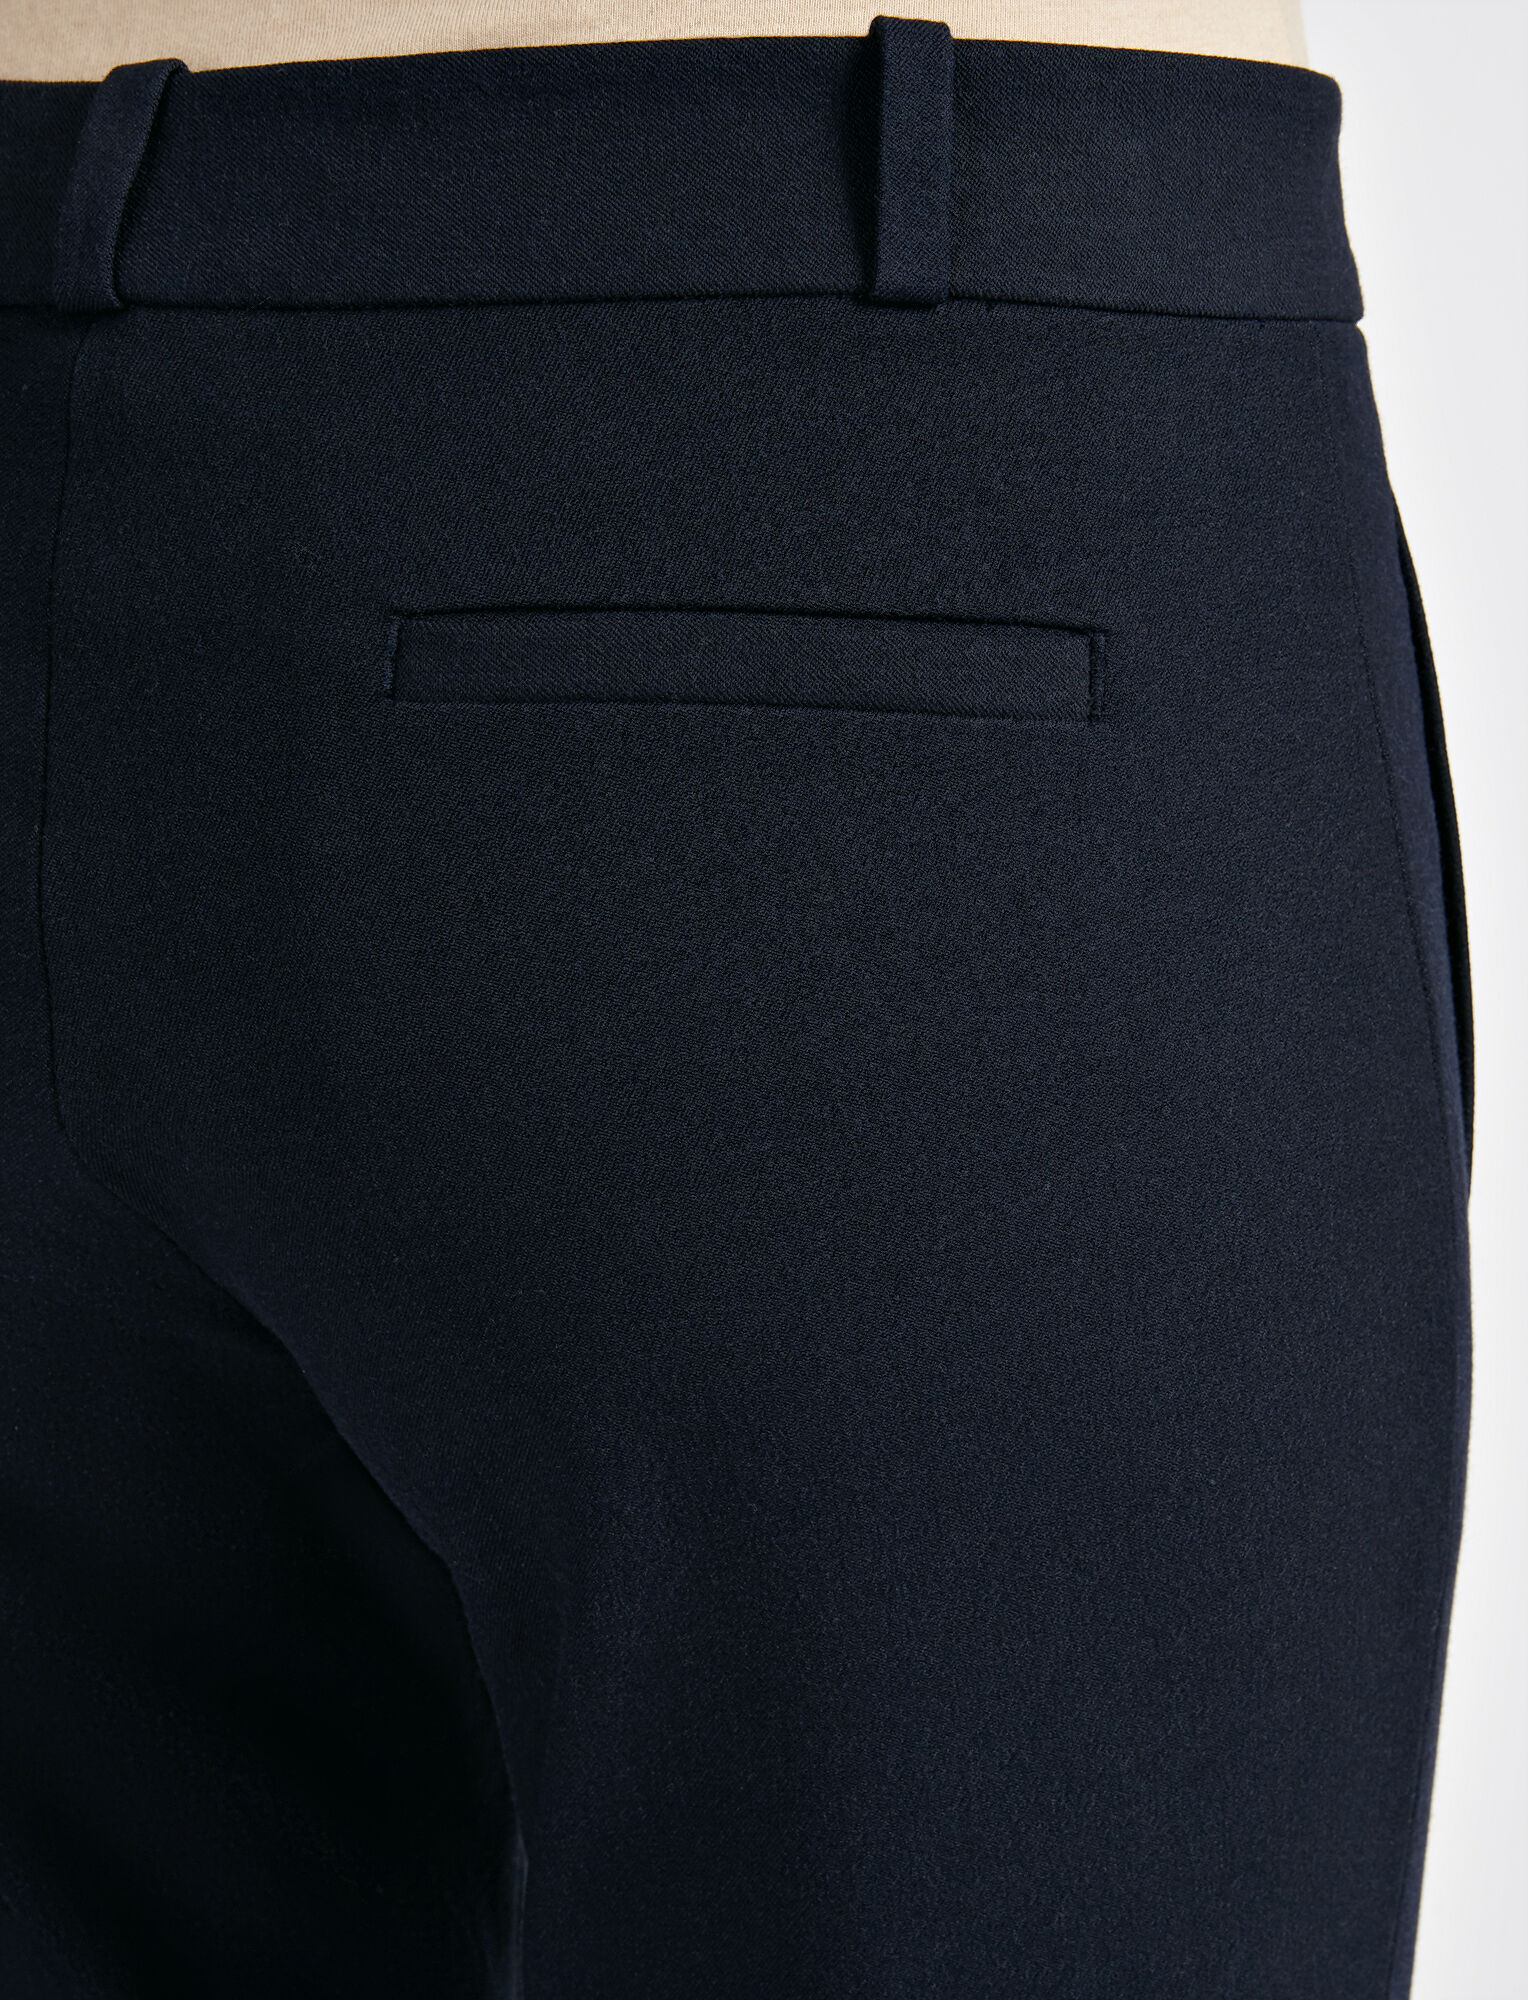 Joseph, Gabardine Stretch New Eliston Trouser, in NAVY